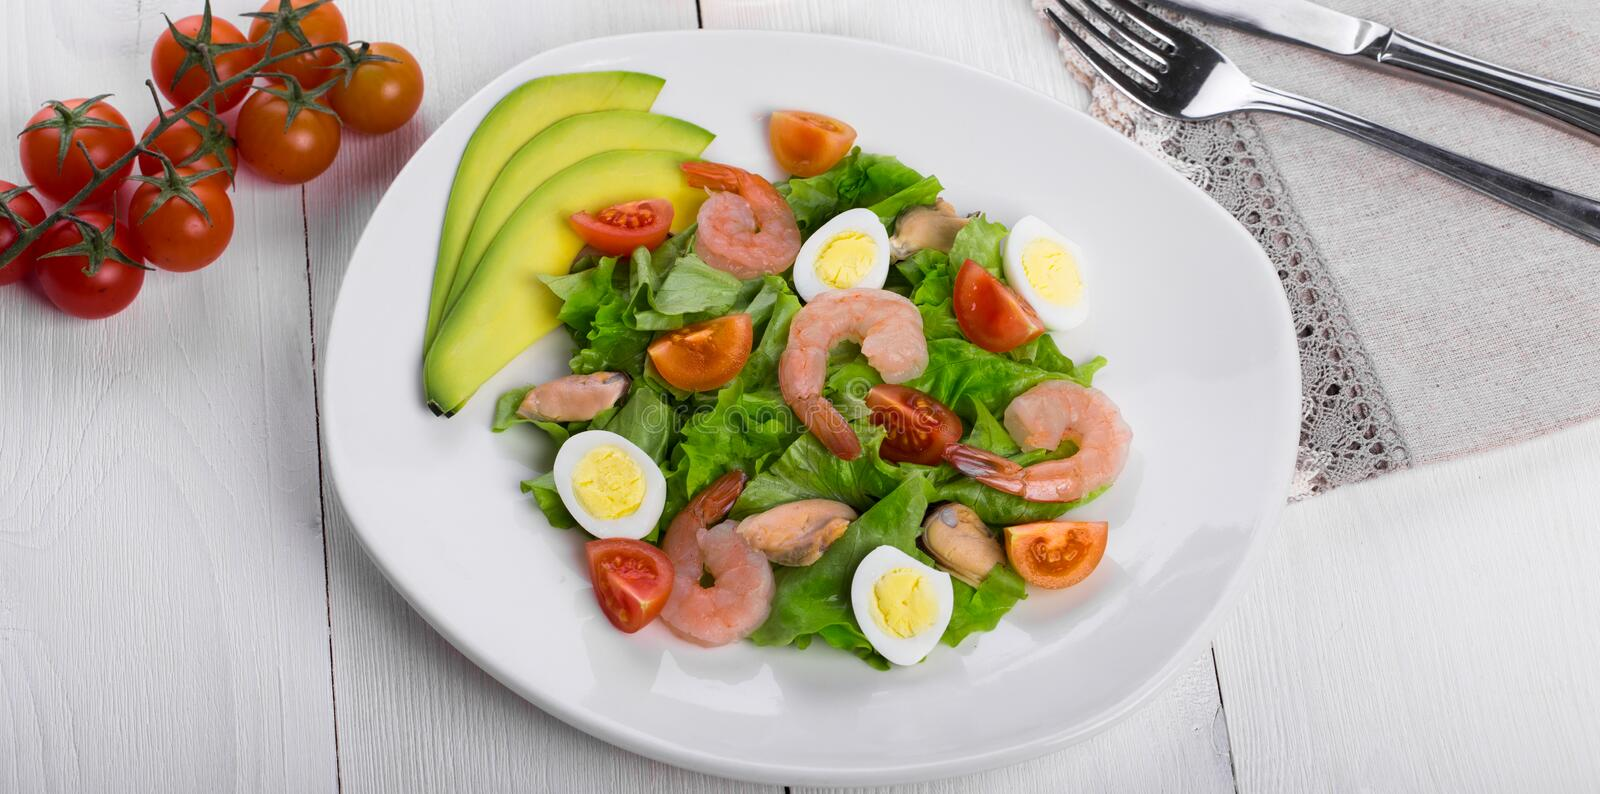 Delicious appetizing vegetable salad with seafood on a white plate. stock photos